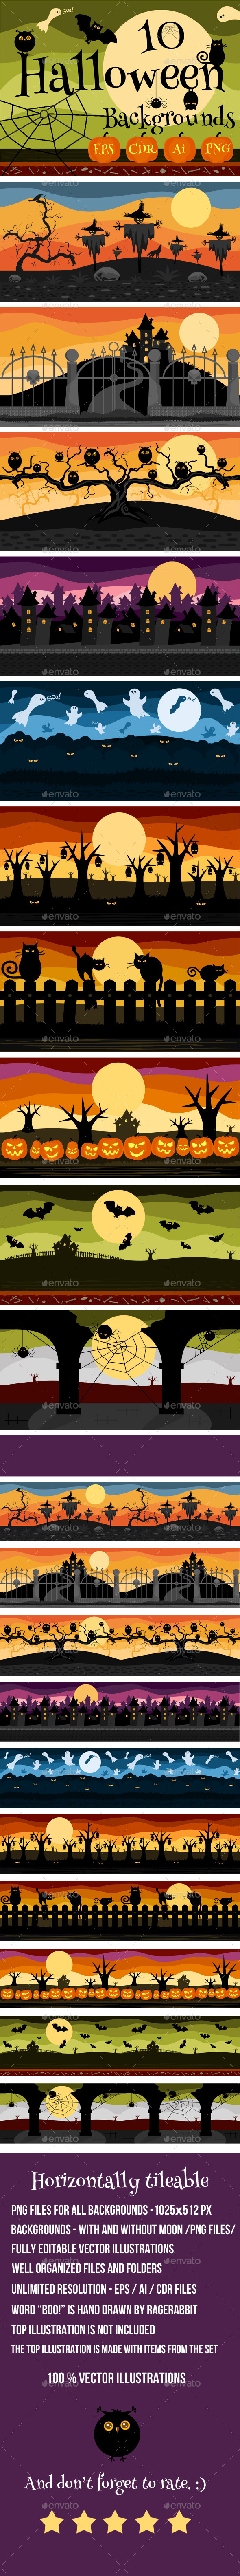 10 Halloween Game Backgrounds - Backgrounds Game Assets